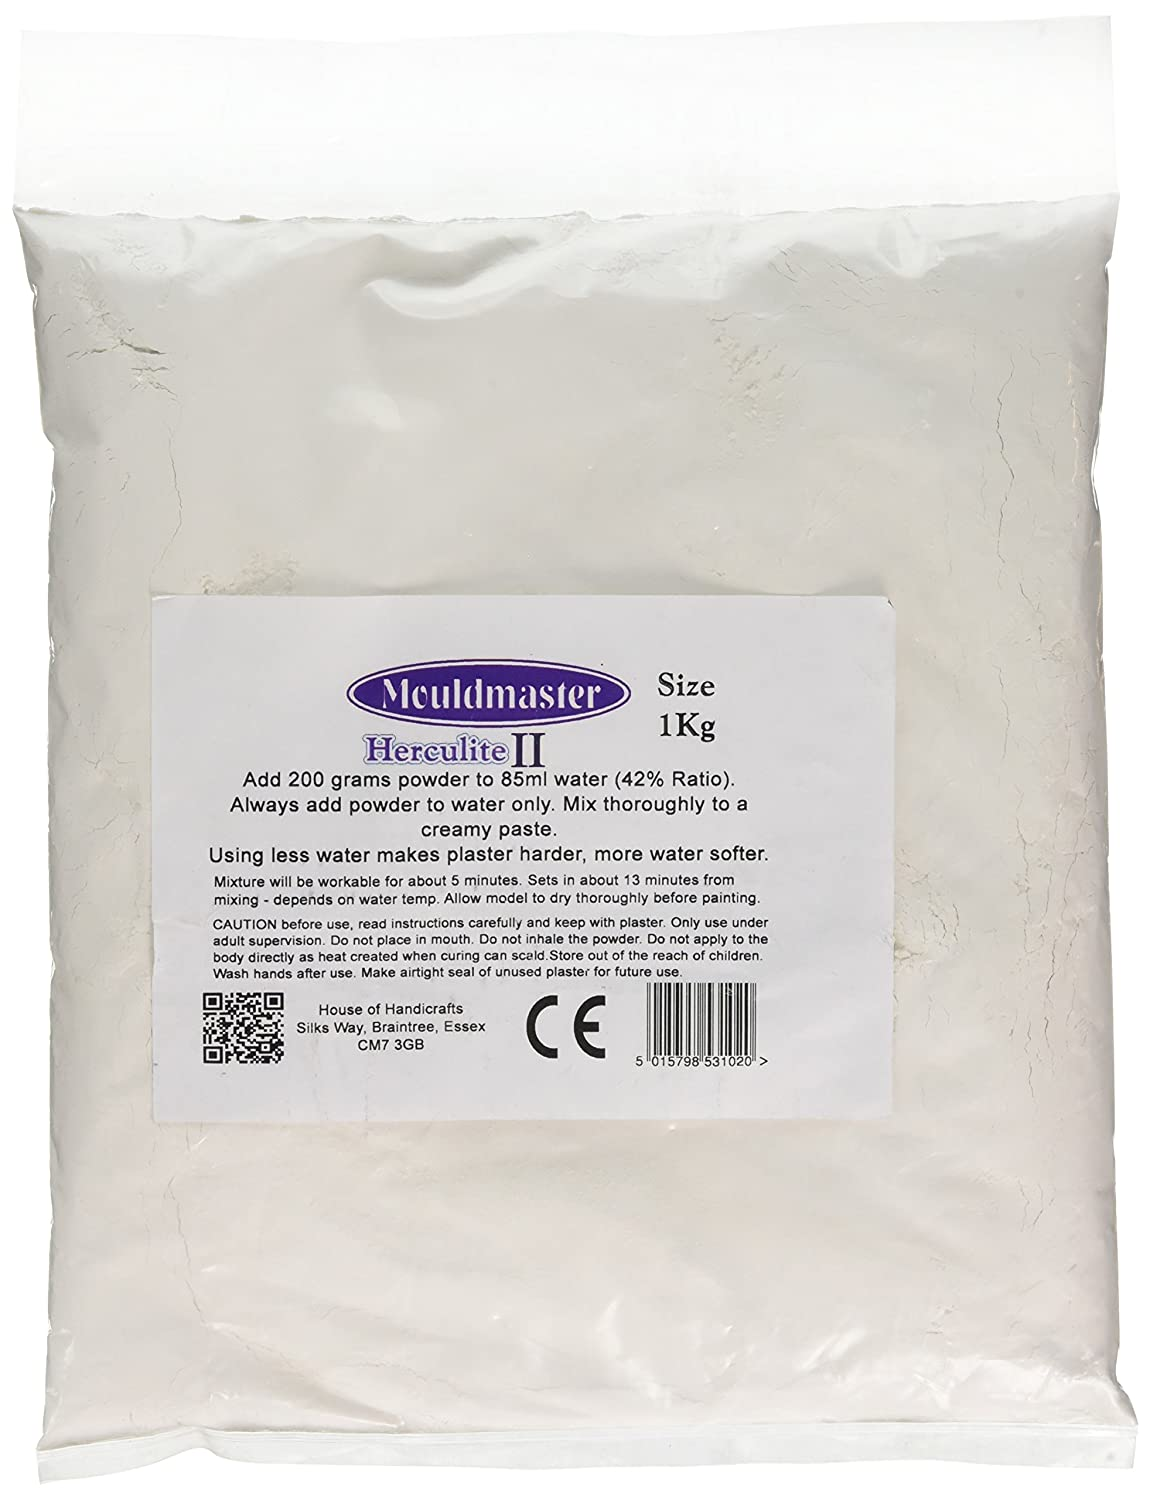 House of Handicrafts 25 x 15 x 3 cm 1 kg Number 2 Herculite Bag, White Mould Master 53102